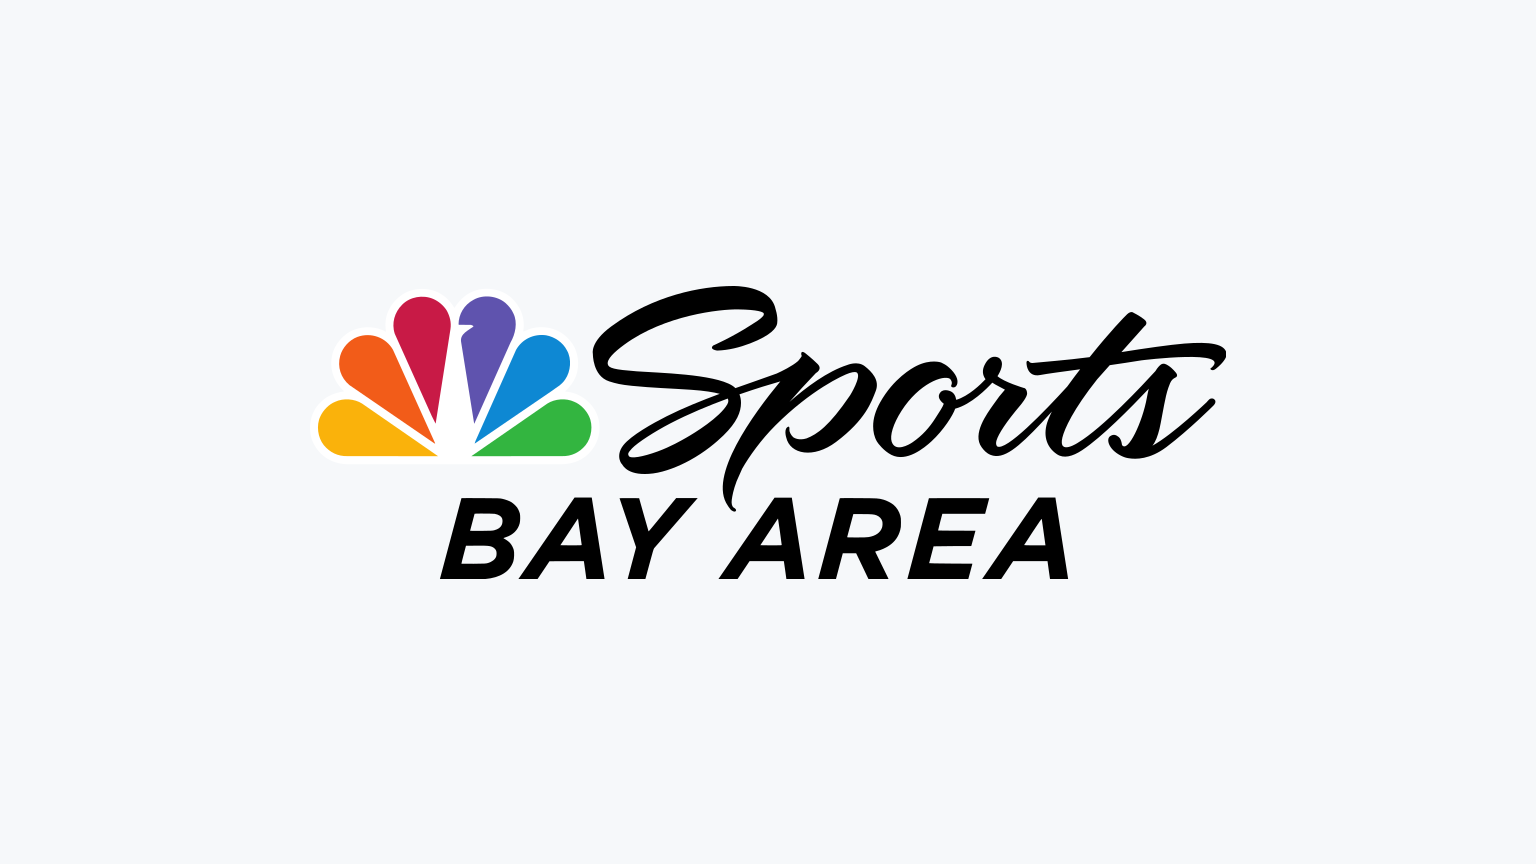 How to Watch NBC Sports Bay Area Live Without Cable in 2021